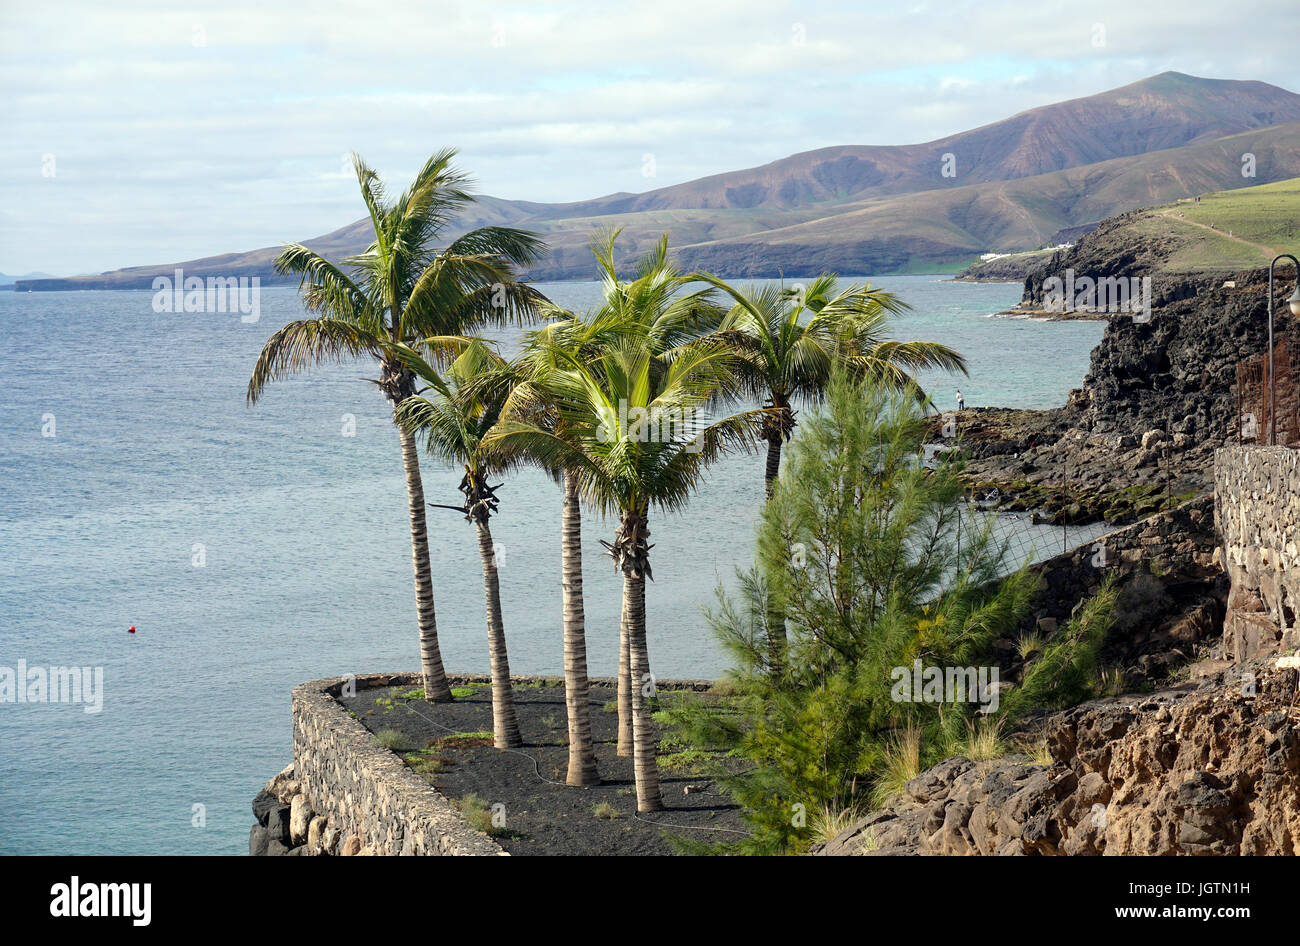 Palm trees at the coast of Puerto Calero, Lanzarote island, Canary islands, Spain, Europe - Stock Image